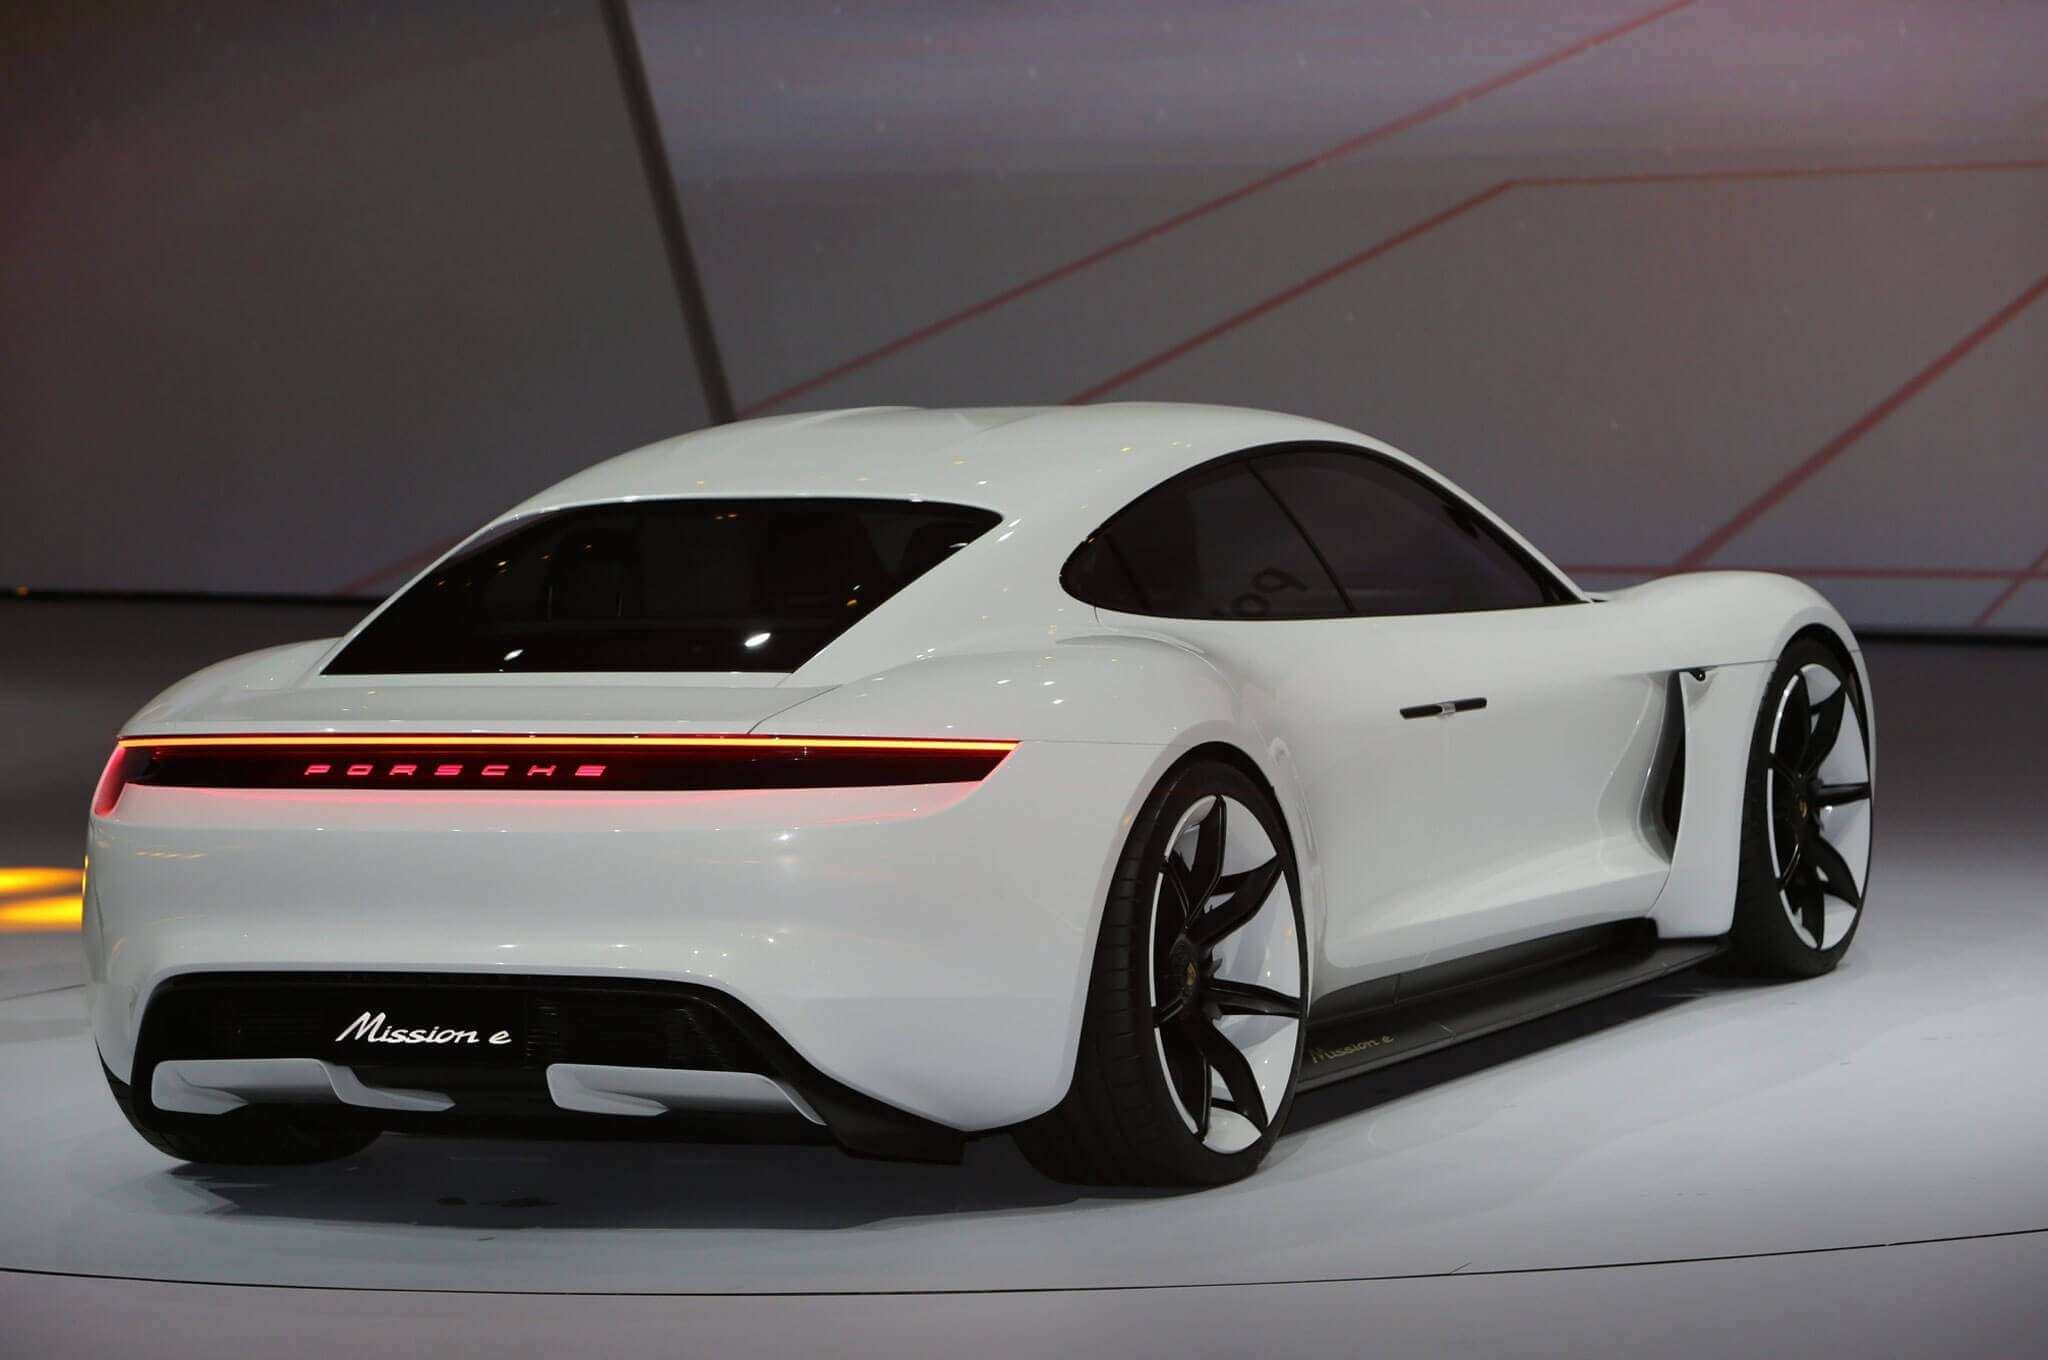 54 Concept of 2020 Porsche Cayenne Turbo S History by 2020 Porsche Cayenne Turbo S